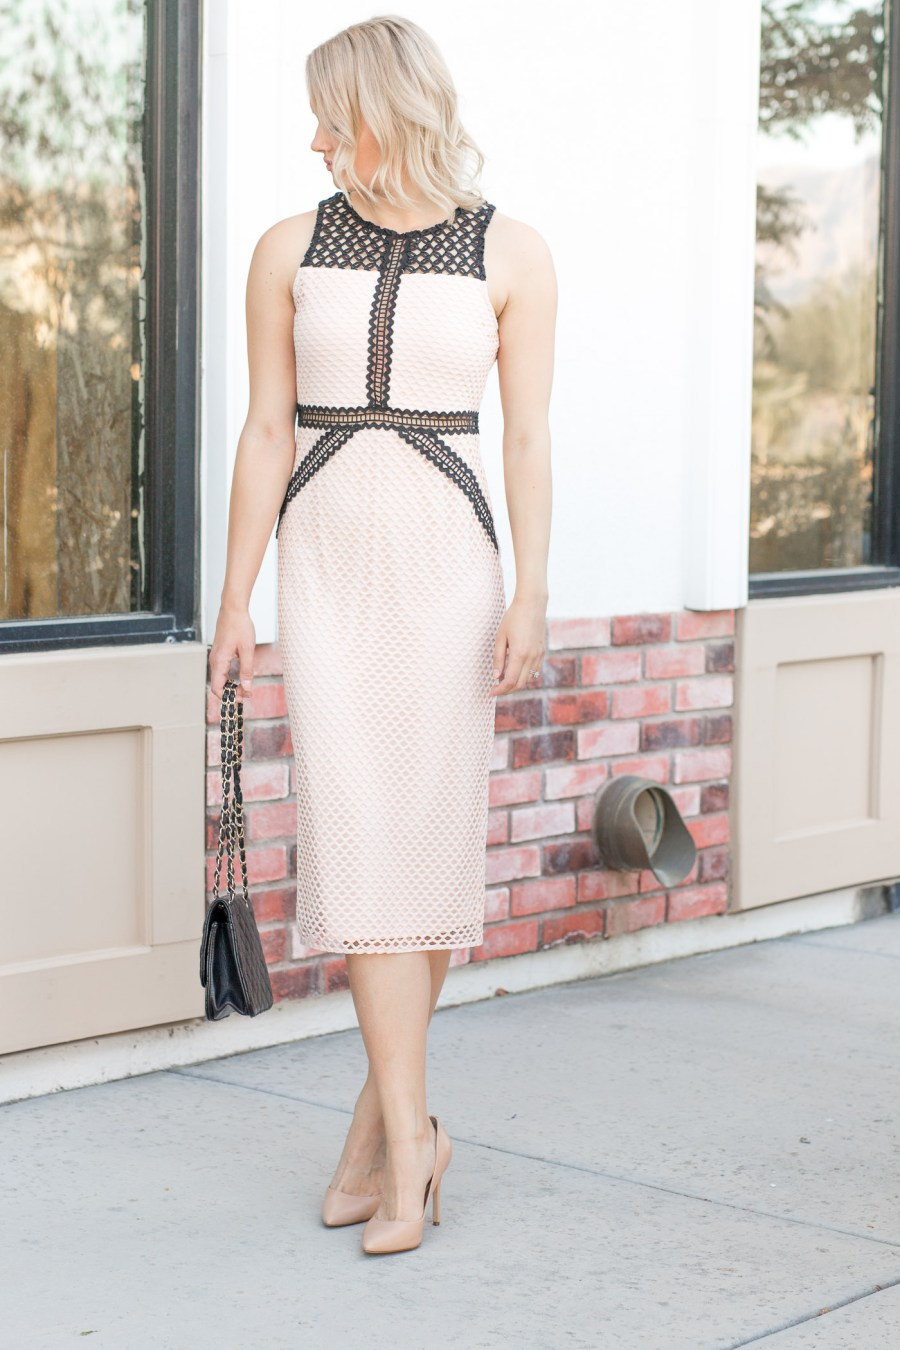 The Perfect Wedding Guest Dress - Treats and Trends